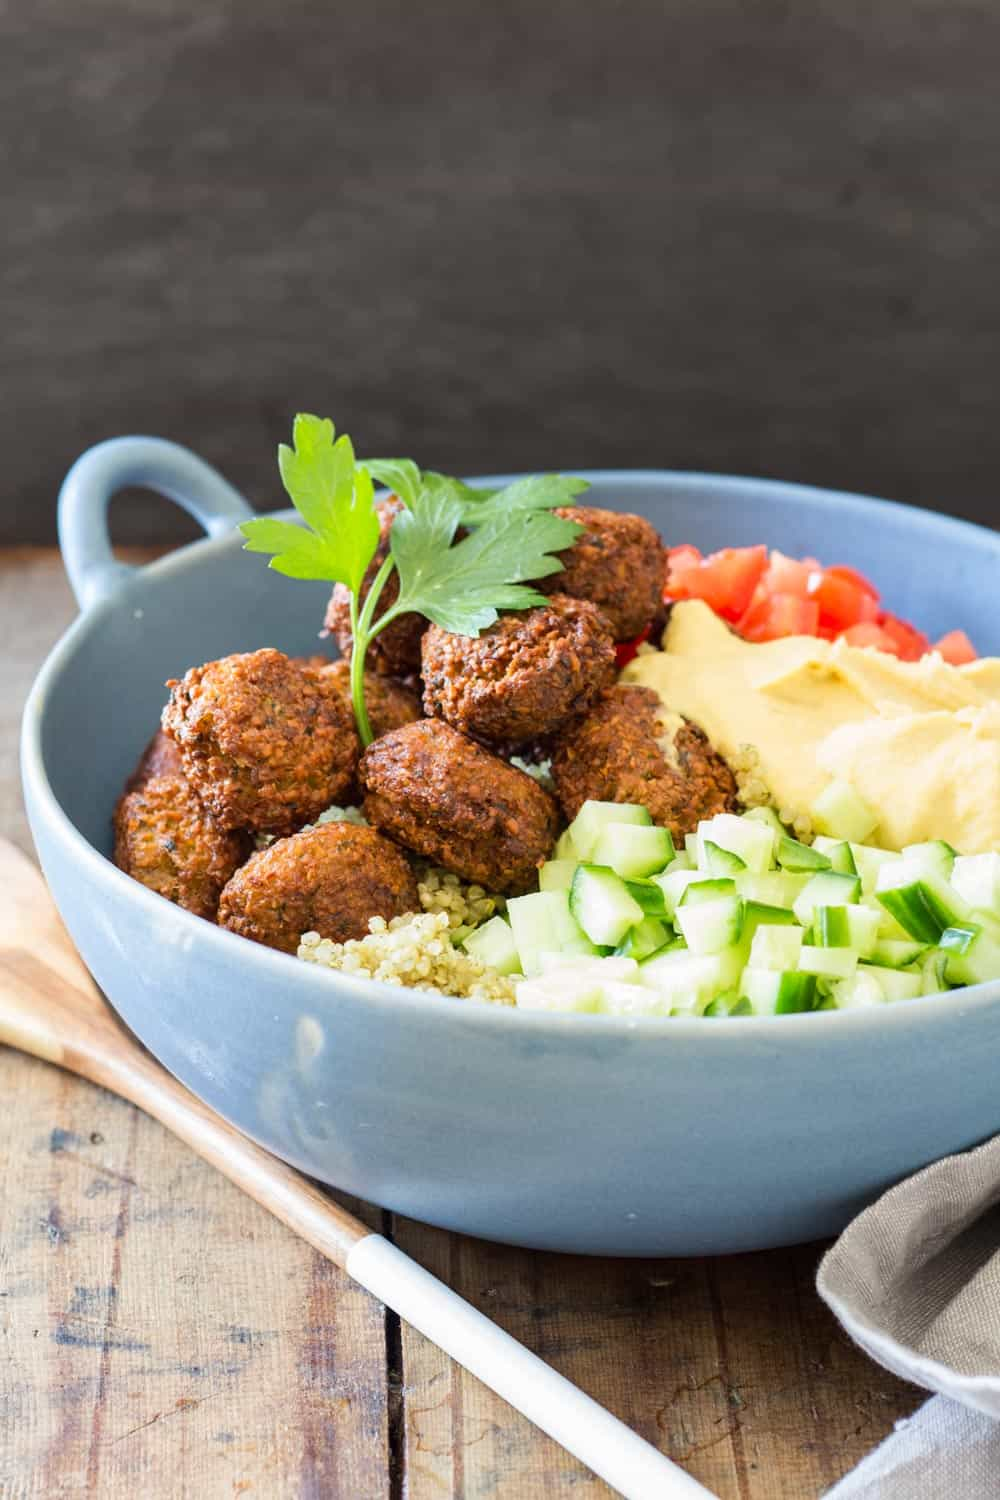 A healthy and highly nutritious flavorful Vegan Quinoa Falafel Bowl, perfect as a picnic or for dinner on the balcony or terrace.